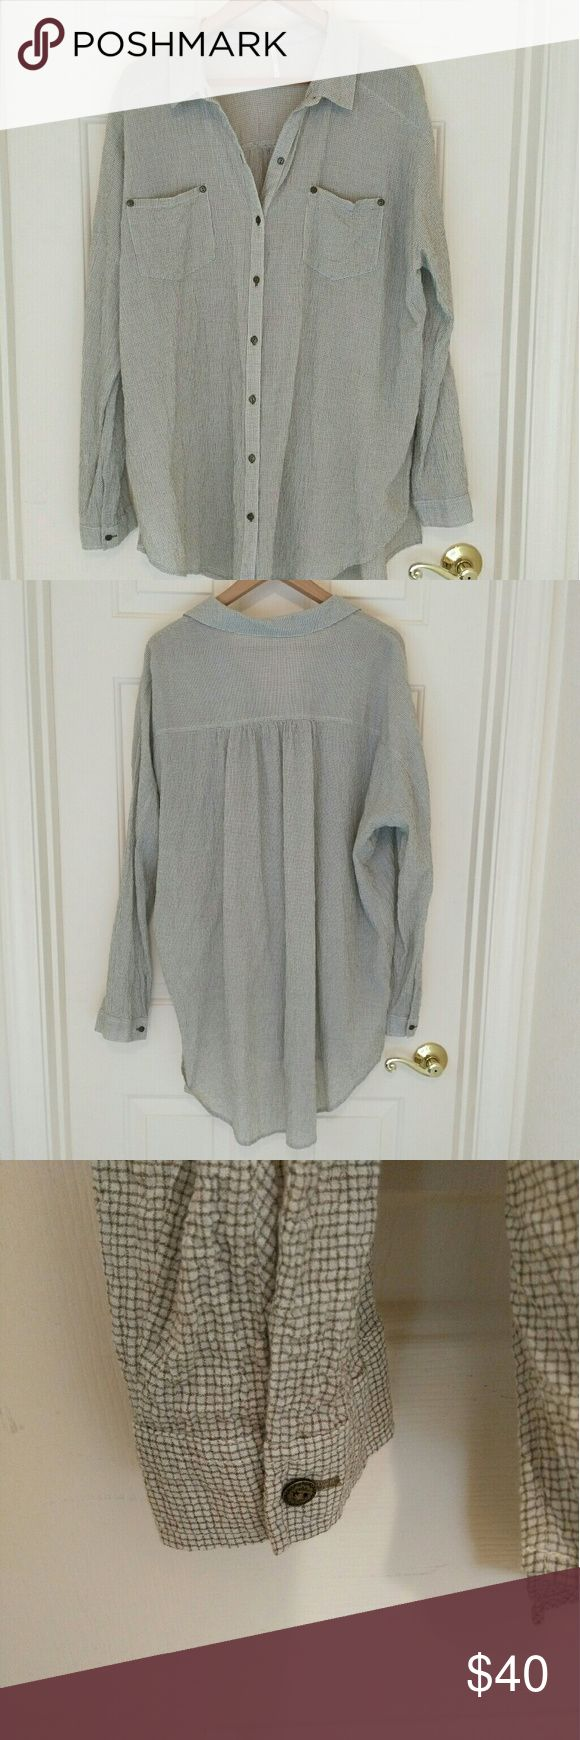 """Free People Oversized Shirt Dress Free People Shirt Dress   Beige with small brown window pane print and  Textured fabric  Excellent used condition.  No rips stains or smells.  99% Cotton 1% Spandex  Approximate Measurements Measured laying flat  Bust 28"""" Length 37"""" Free People Dresses"""